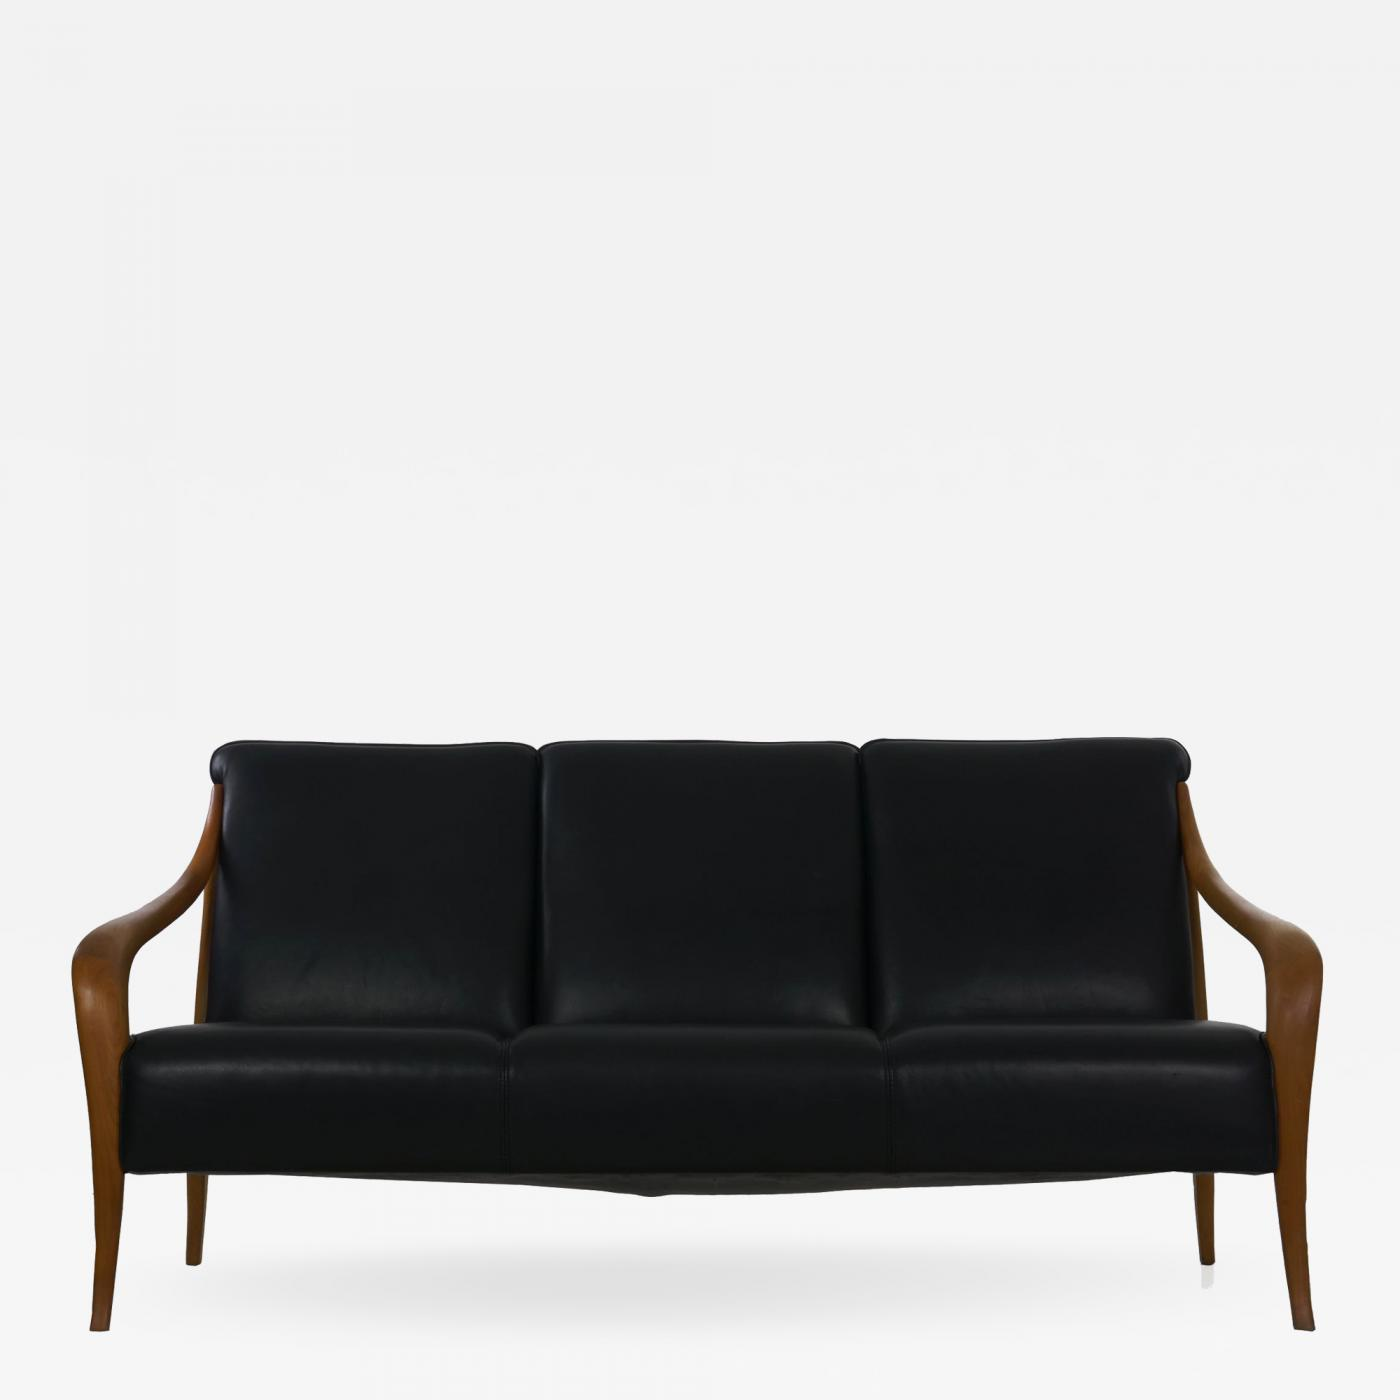 Wagner - Danish Mid Century Modern Style Sculpted Teak Black Leather Sofa  by Wagner